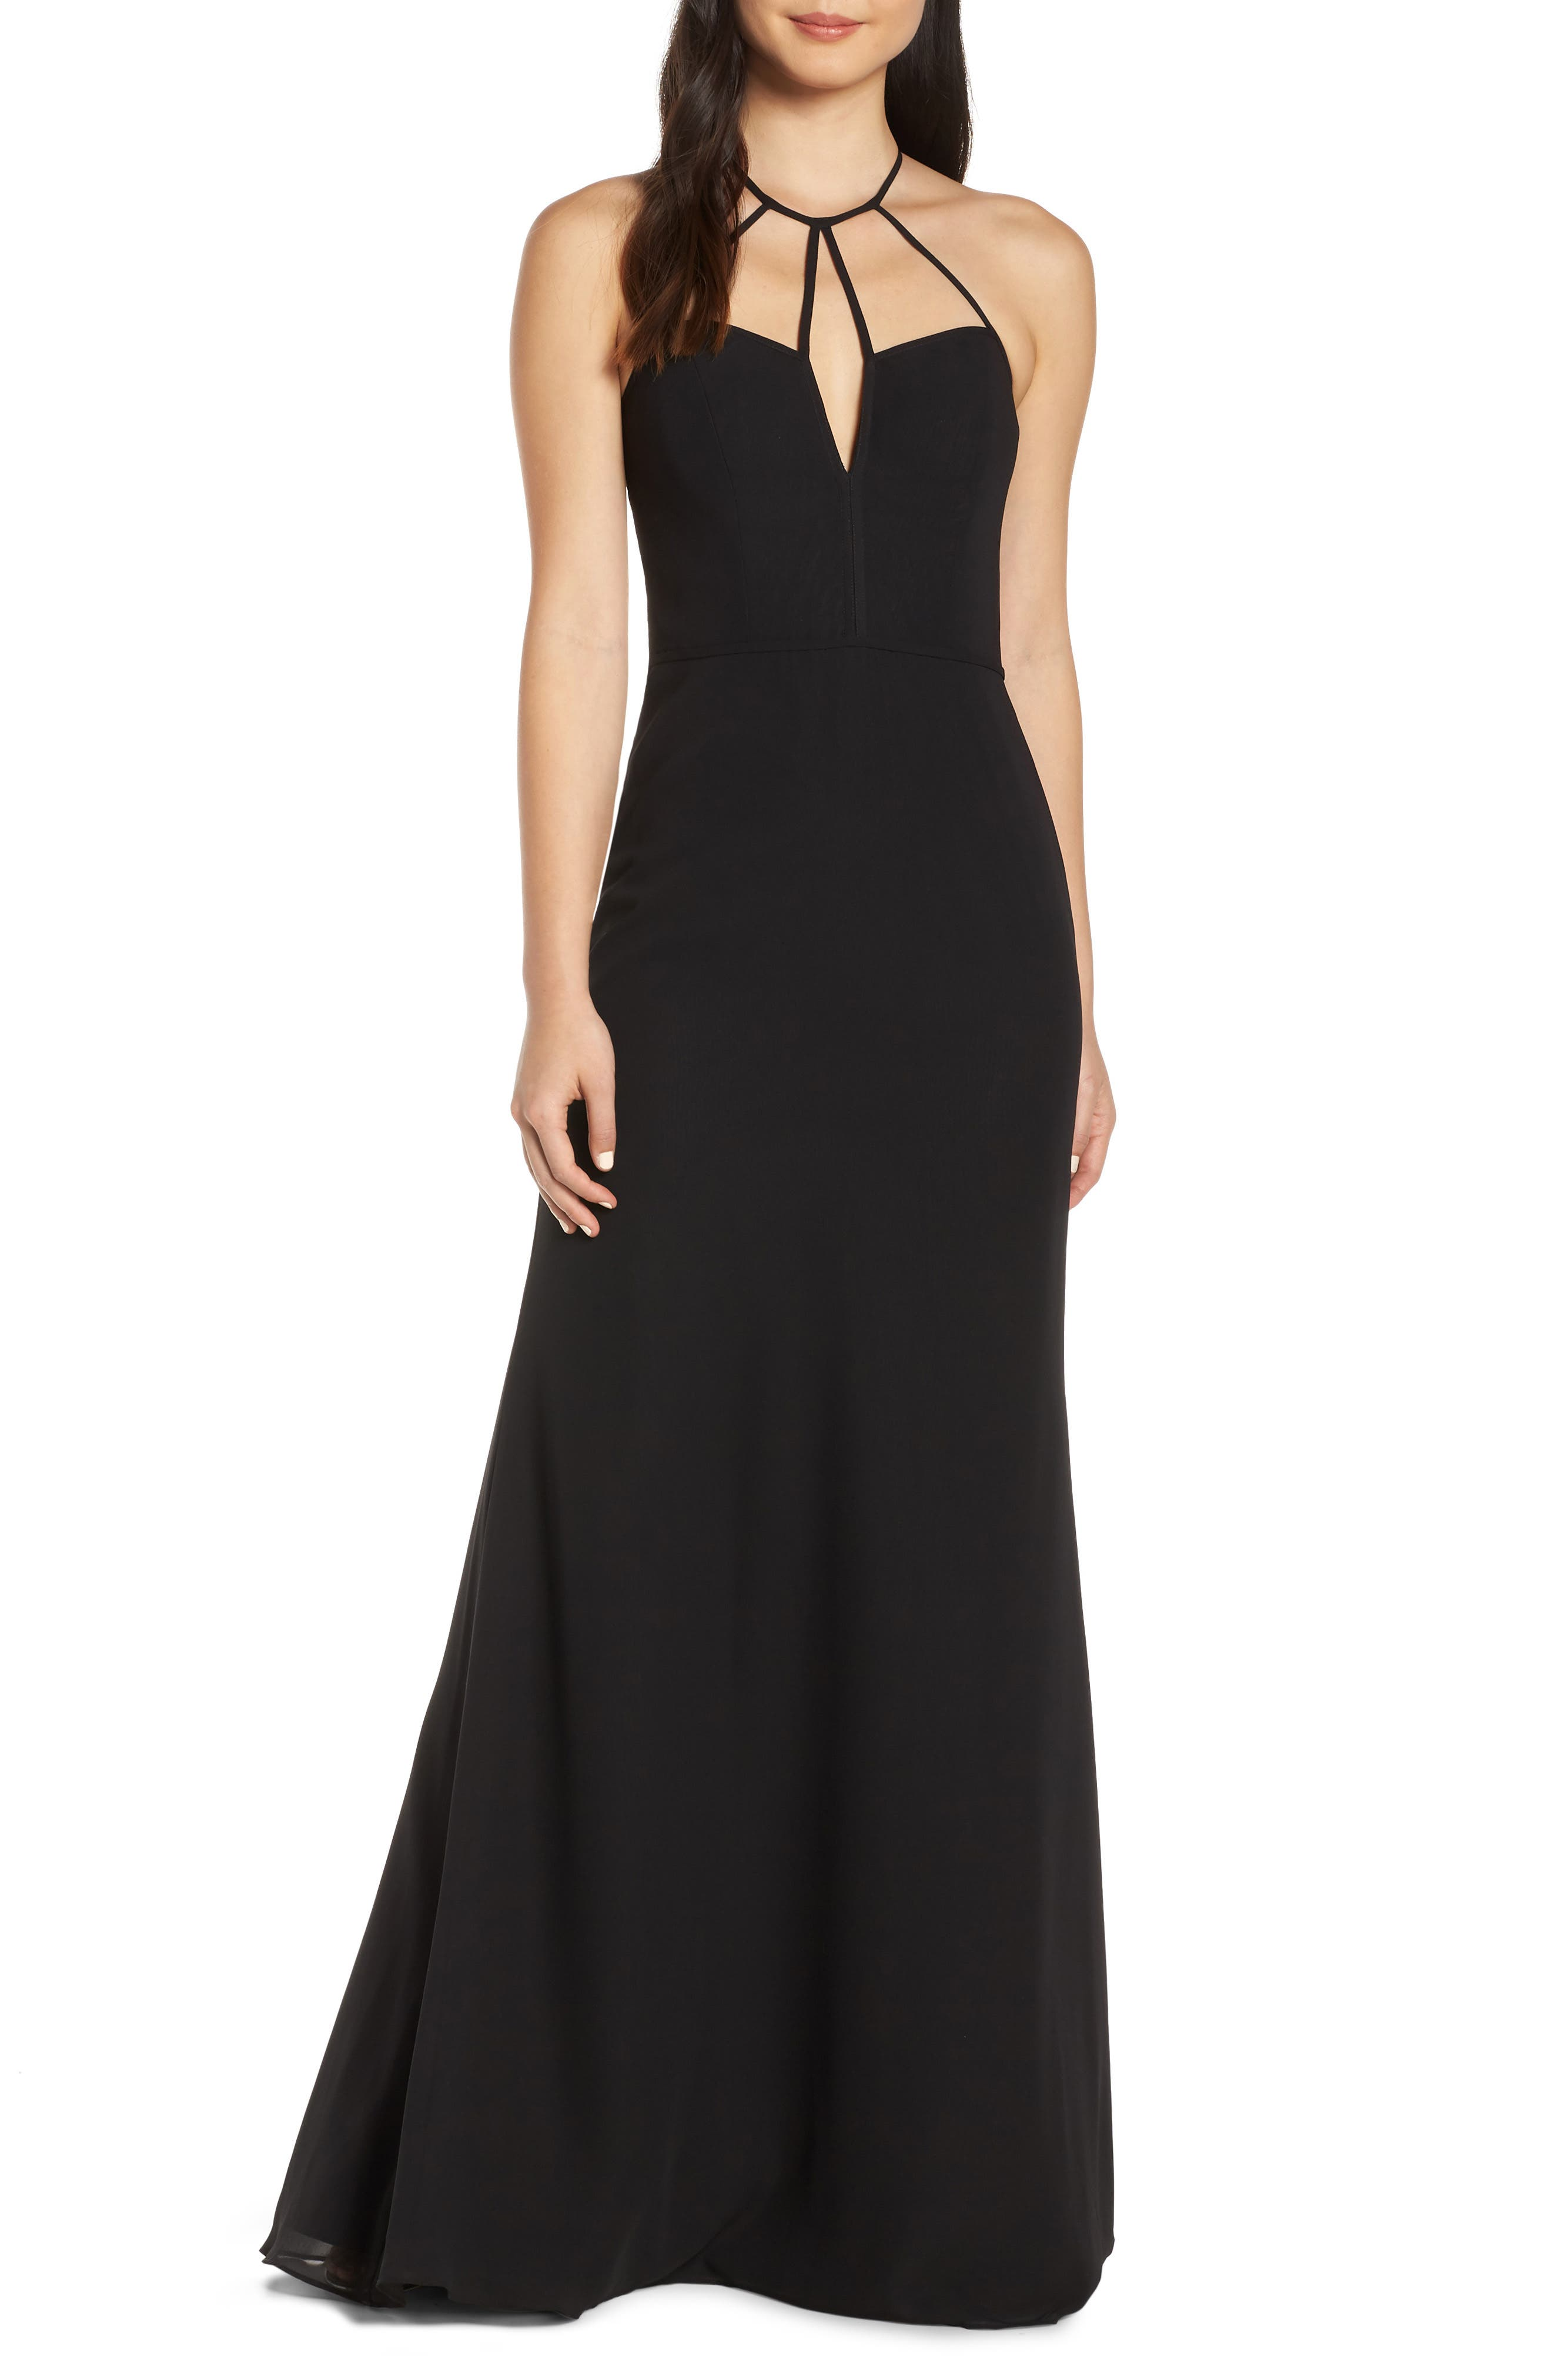 Hayley Paige Occasions Strappy Detail Chiffon Evening Dress, Black